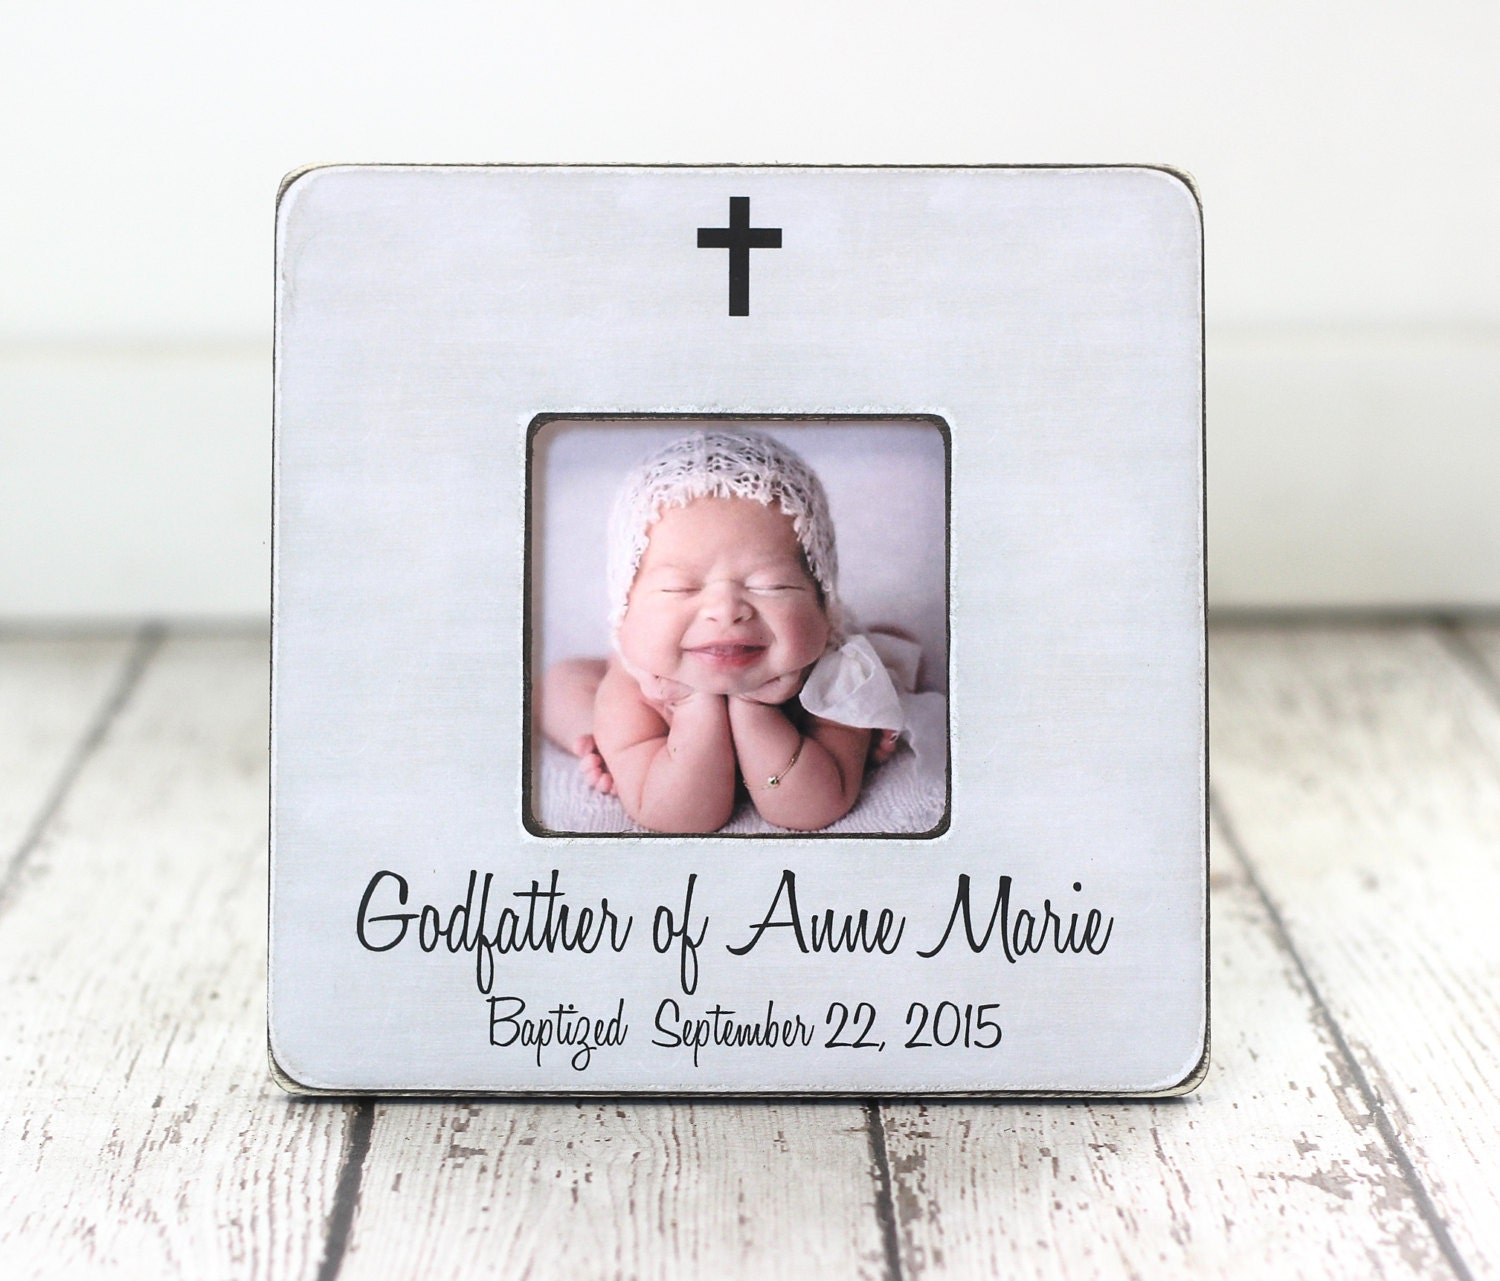 Godfather gift for baptism personalized picture frame description godfather gift for baptism personalized picture frame jeuxipadfo Image collections